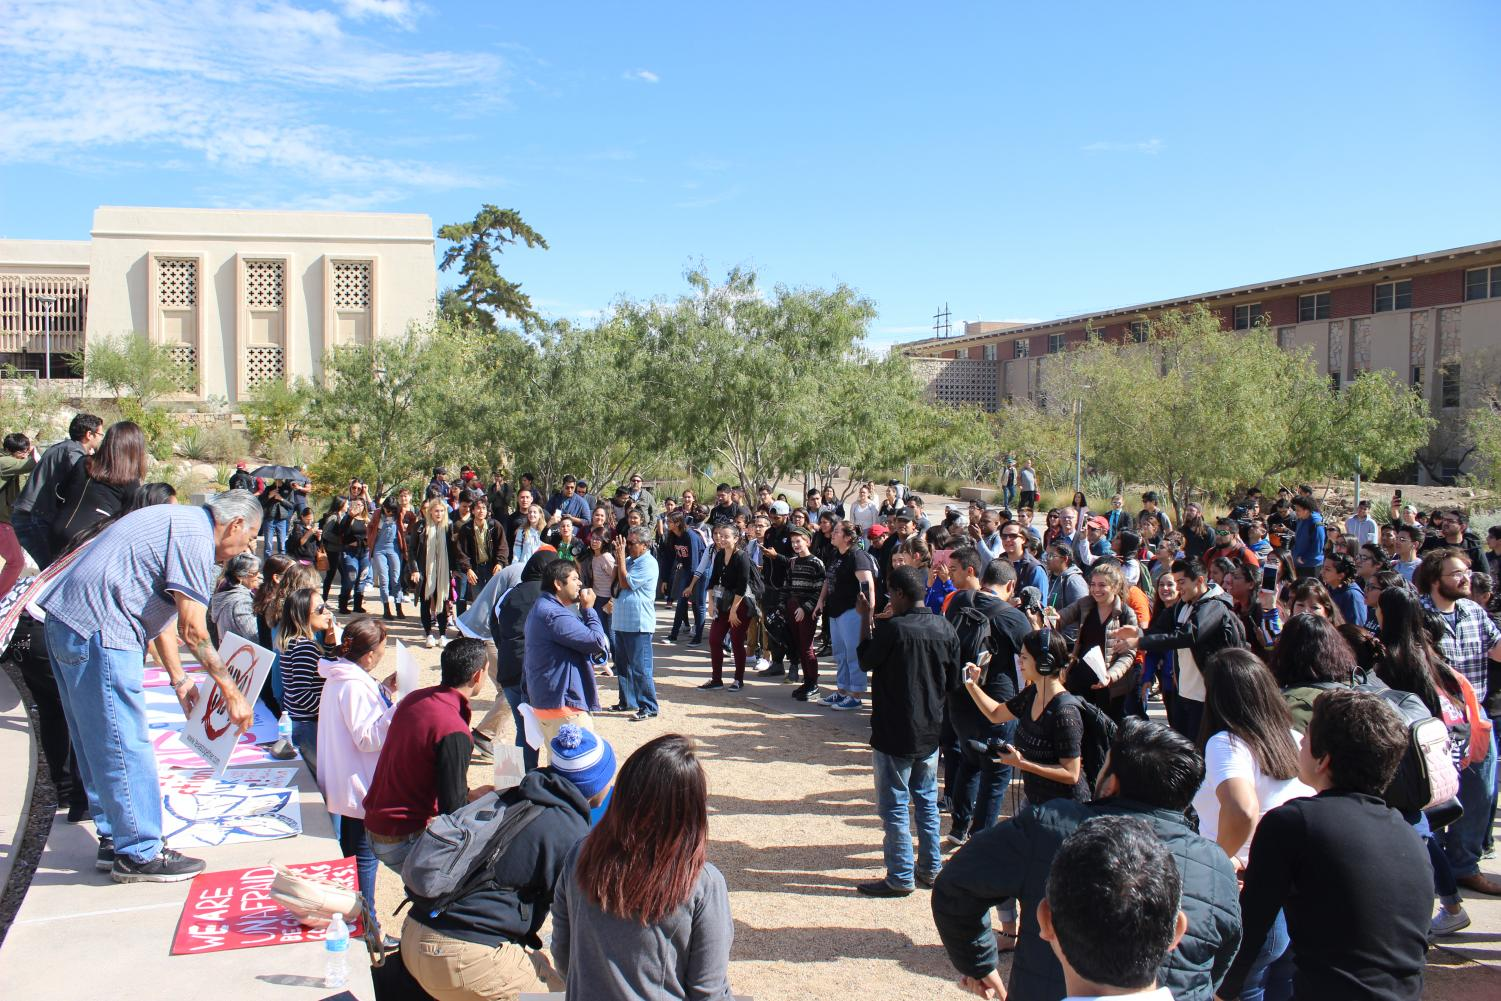 Students+who+participated+in+the+walk+out+called+for+Utep+President+Diana+Natalicio+to+show+public+support+for+DACA+recipients.+